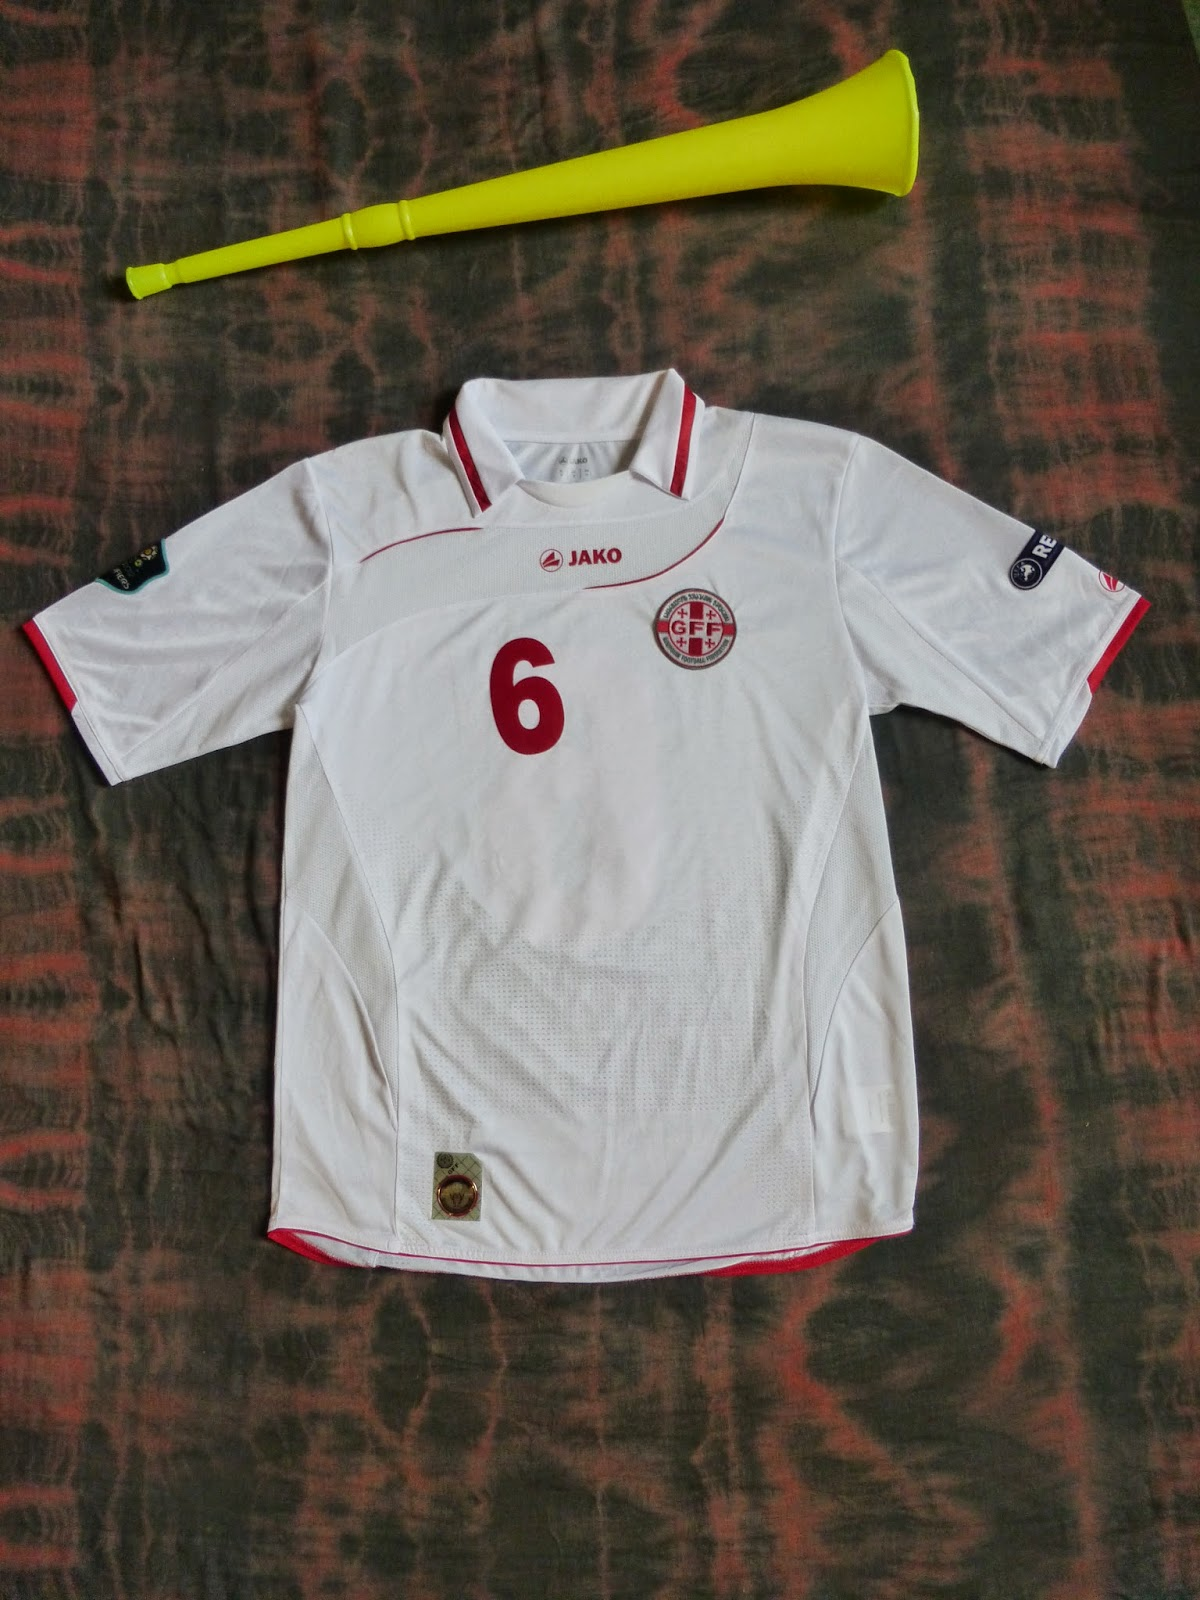 facc6bc4b07d While I do believe my previous Georgia shirt is genuine I have never been  quite 100% certain, so during a recent sale on classicfootballshirts.co.uk  I ...